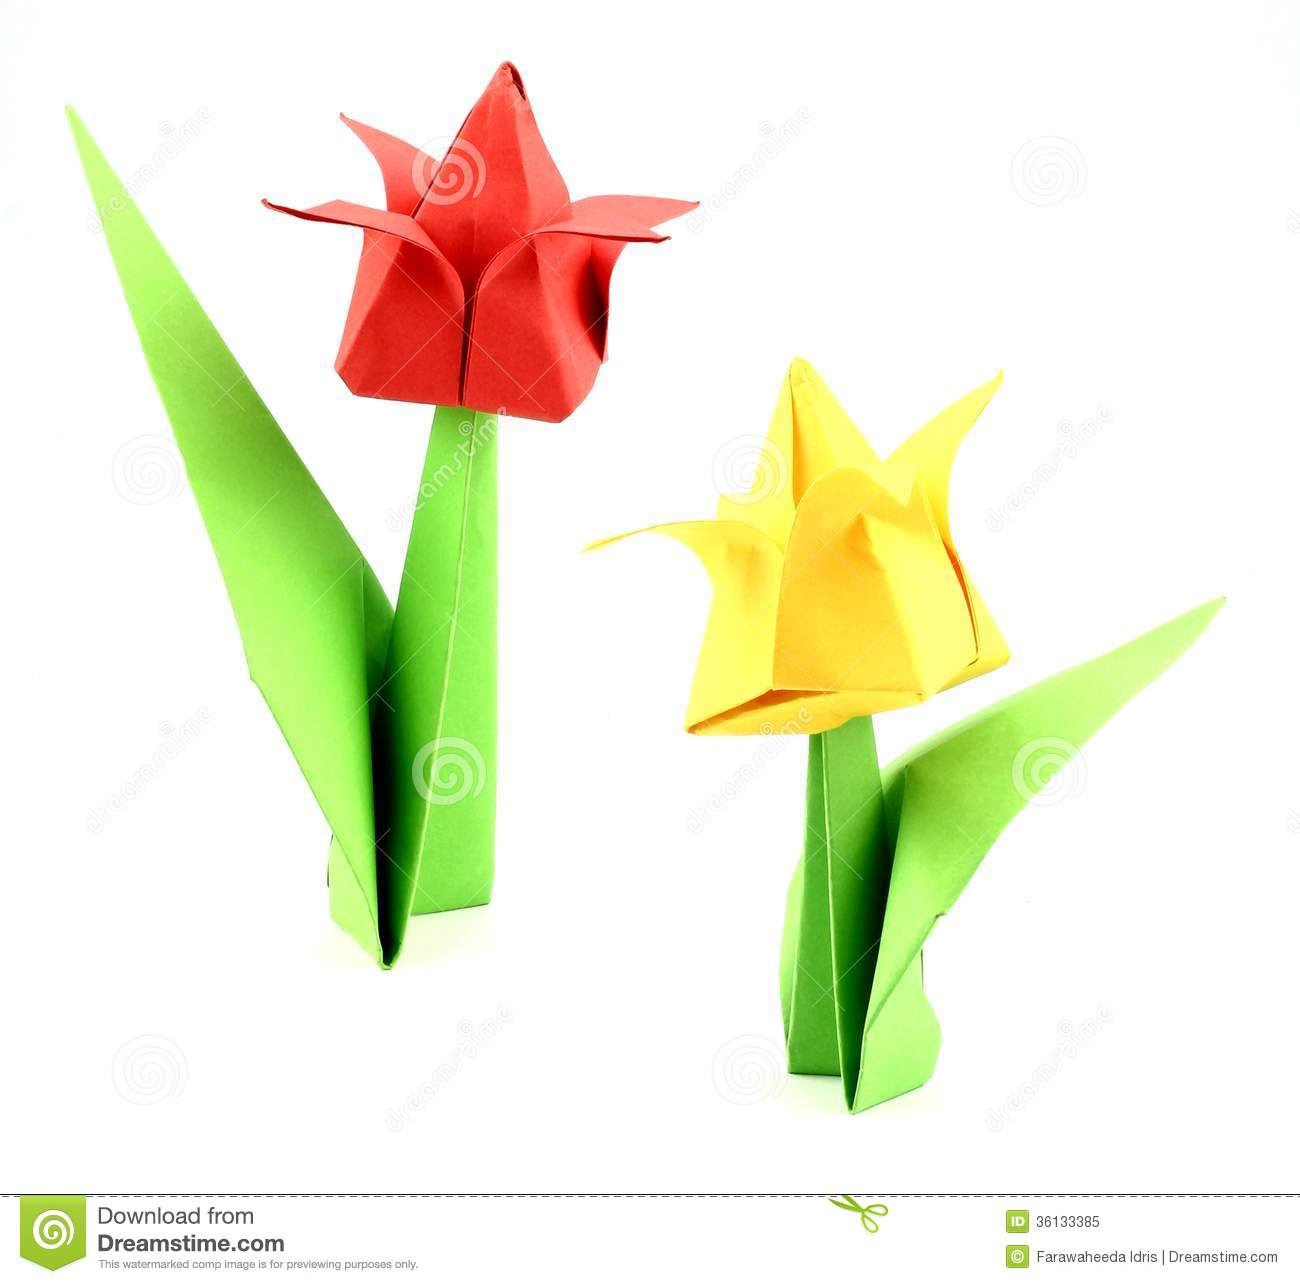 Origami tulip flower stock image image of images picture 36133385 origami tulip flower images picture jeuxipadfo Image collections